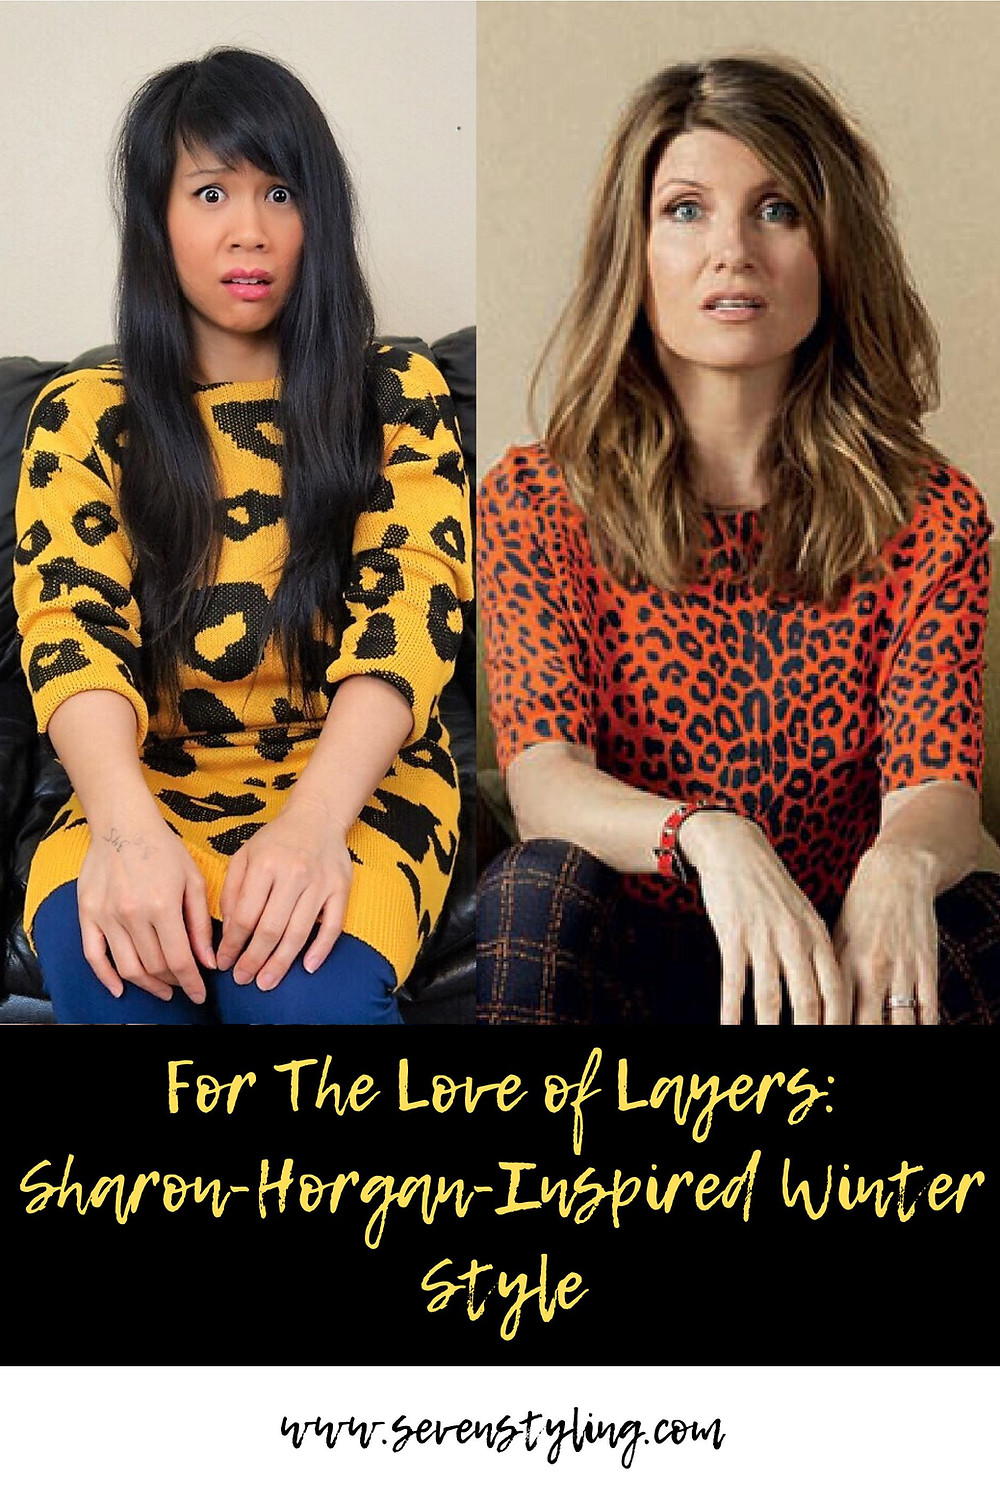 For The Love of Layers: Sharon-Horgan-Inspired Winter Style